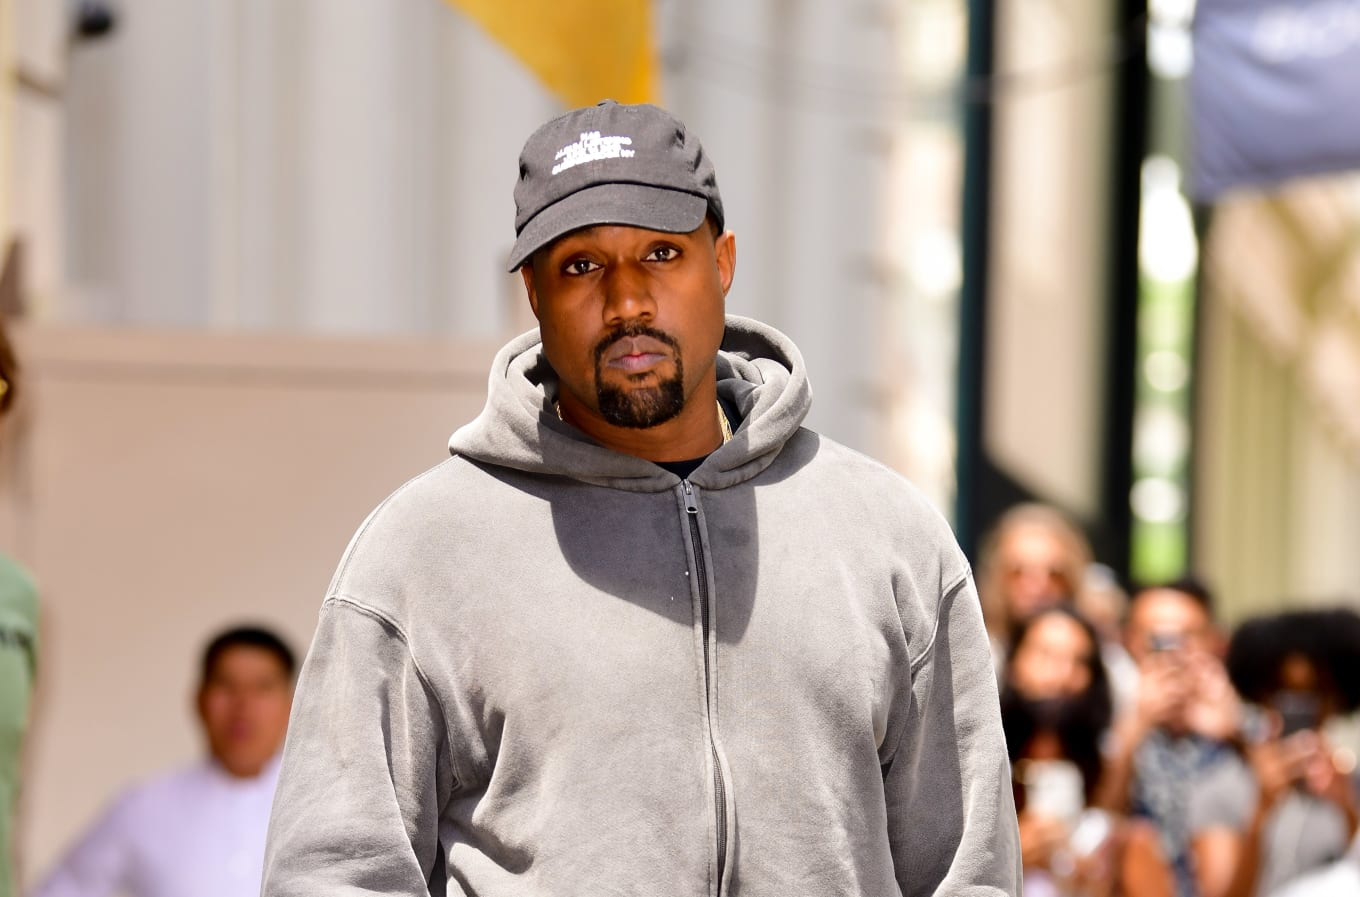 075cd7dd5 Kanye West Says He s Giving a Homeless Man Free Yeezys